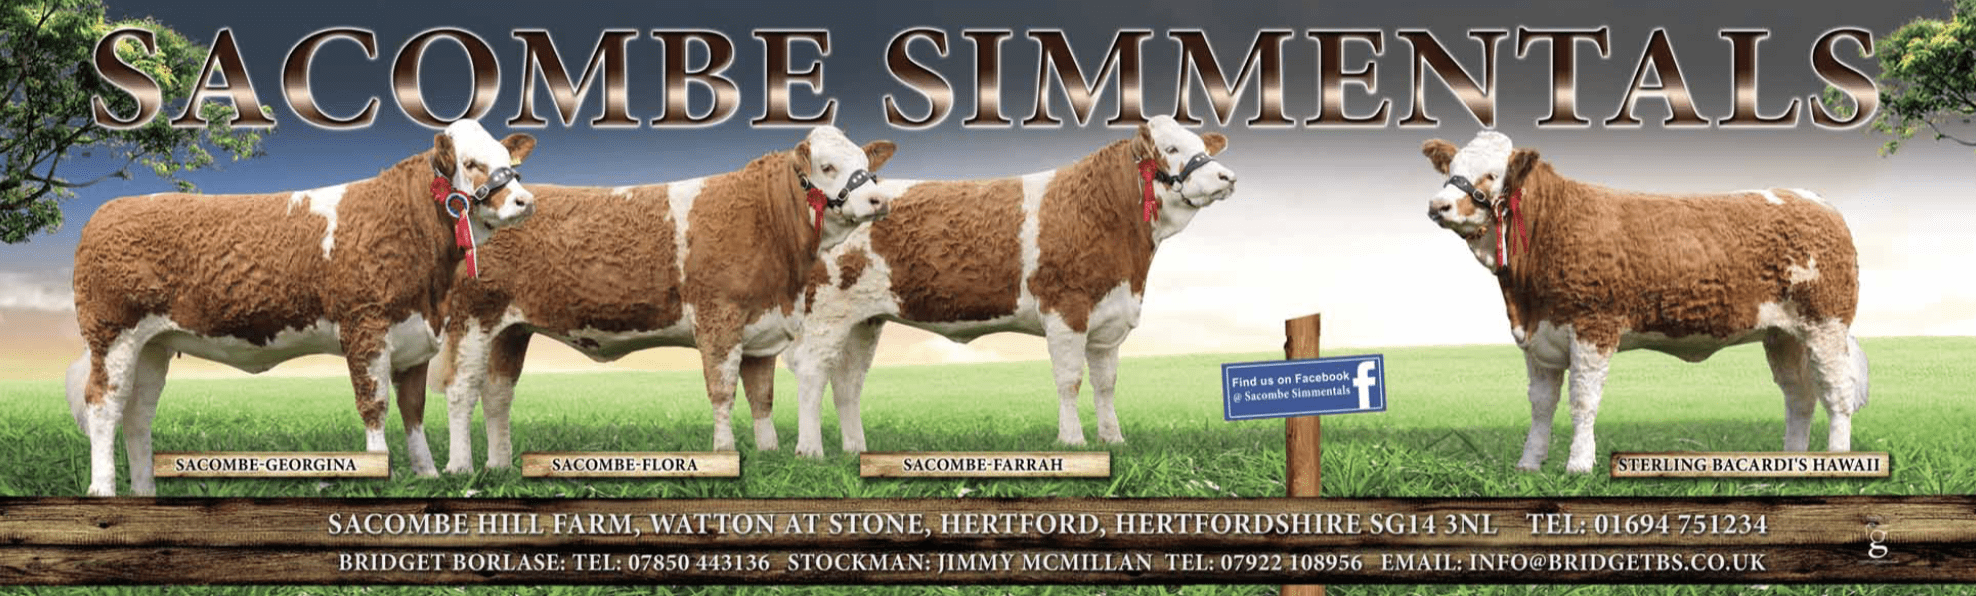 Banner design for Sacombe Simmentals